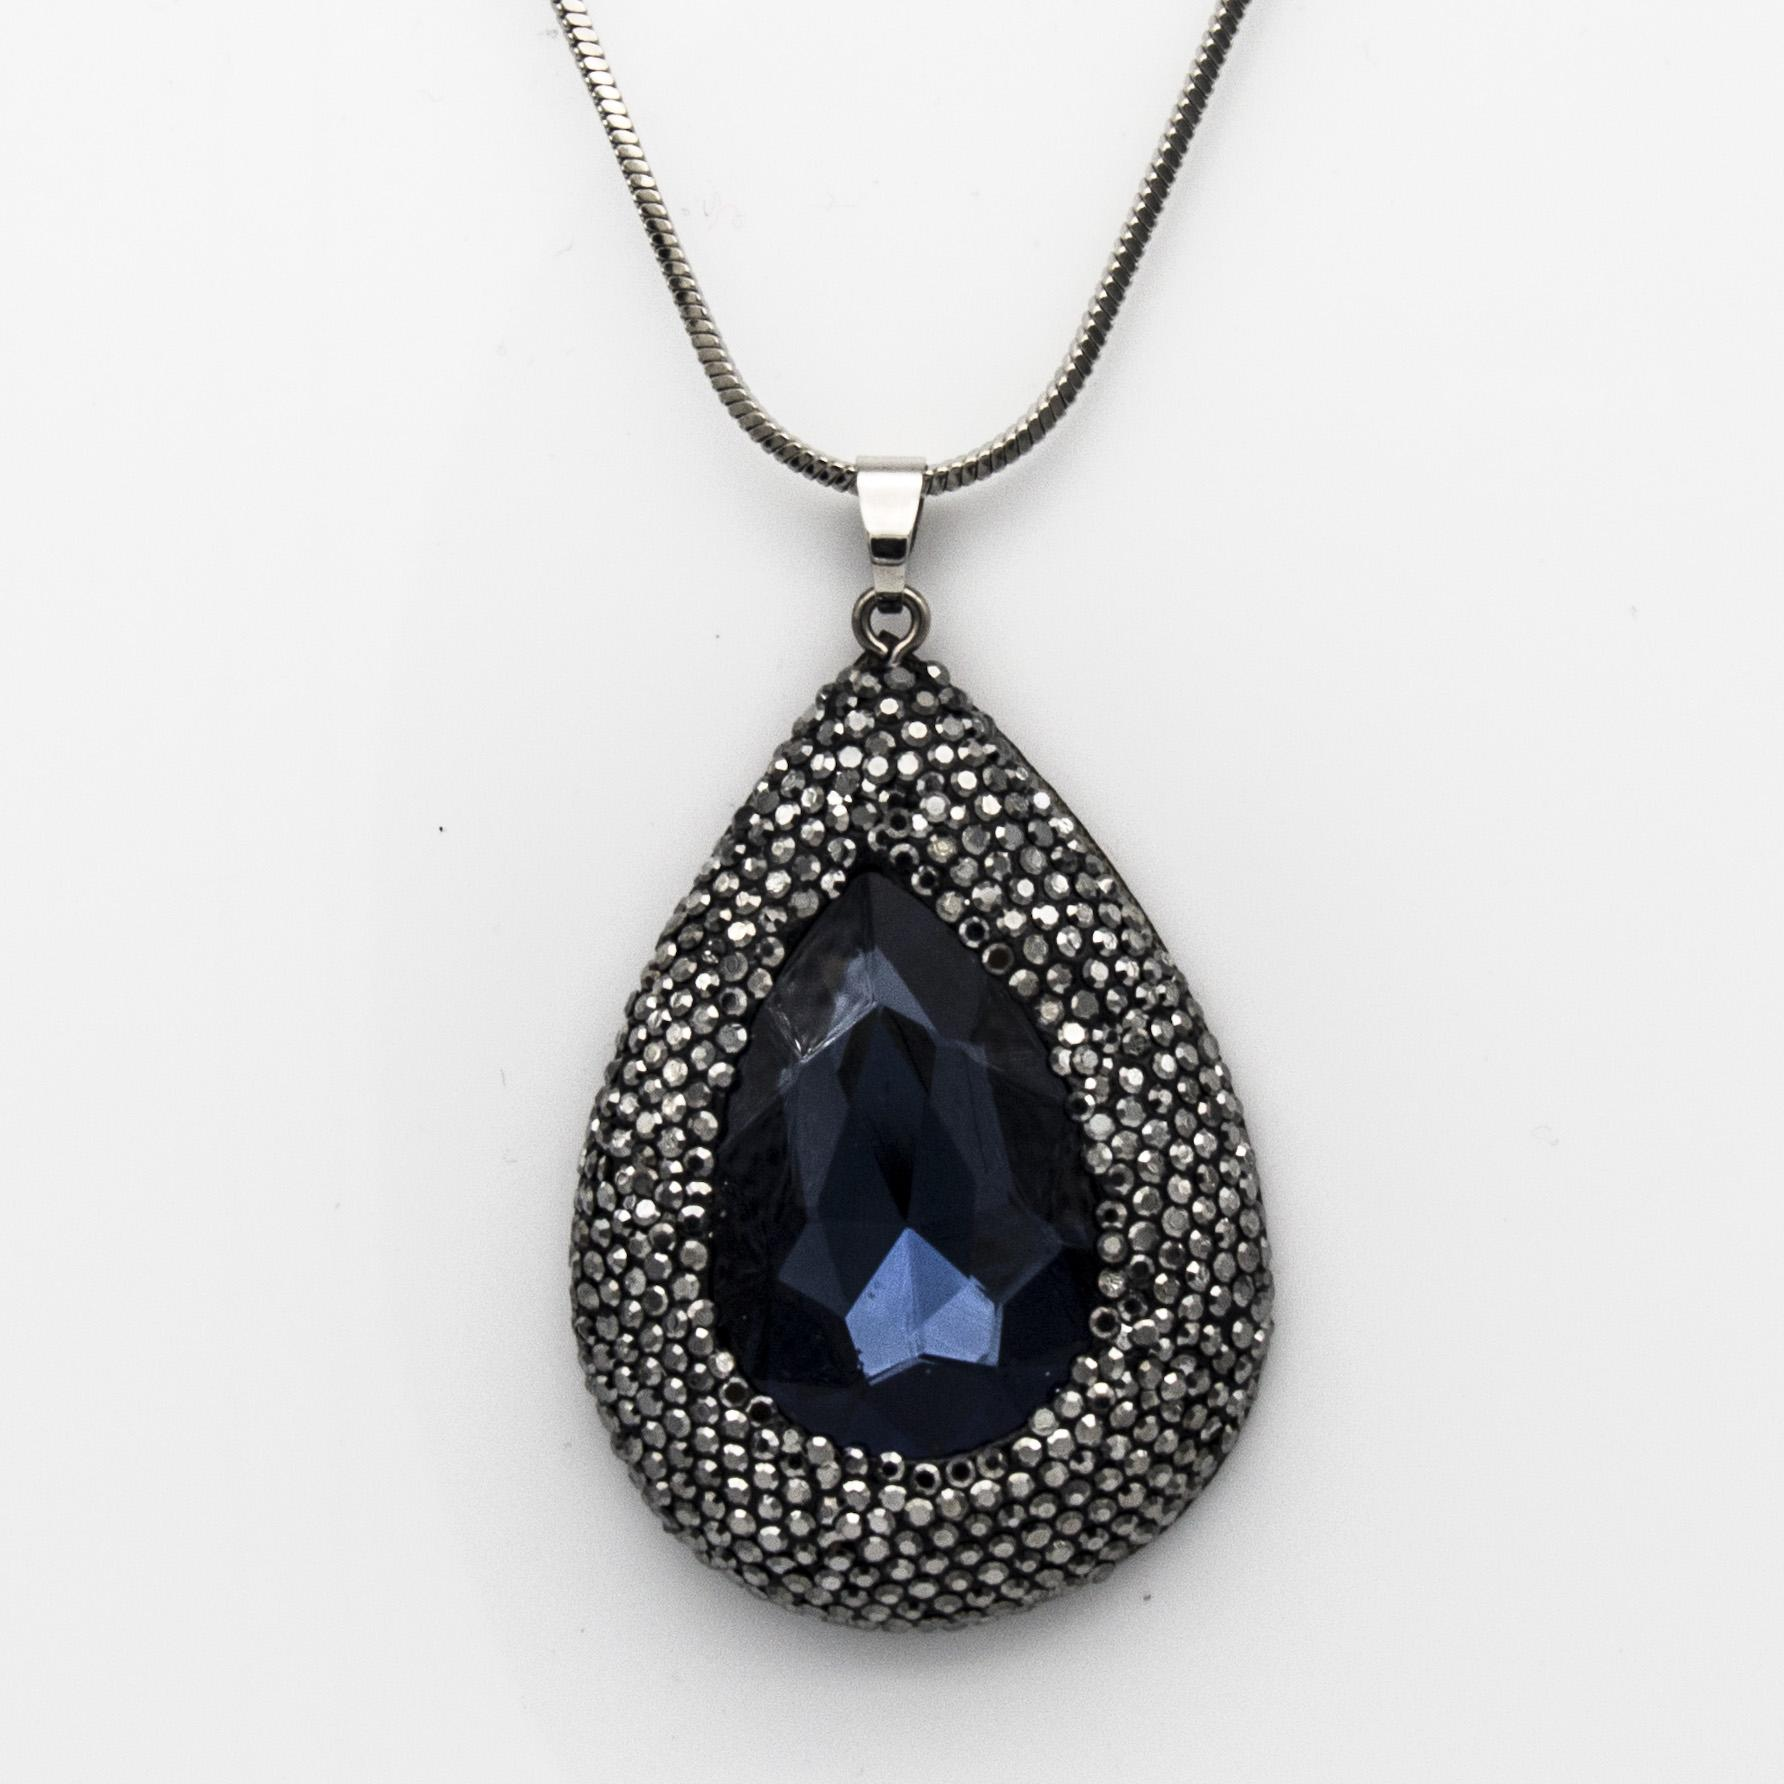 6dc0323a2 Wholesale Designer Clay Black Rhinestone Crystal Water Drop Pendant Chain  Necklace Blue Green & Gold Color Couture Jewelry Gifts For Women Wholesale  Silver ...